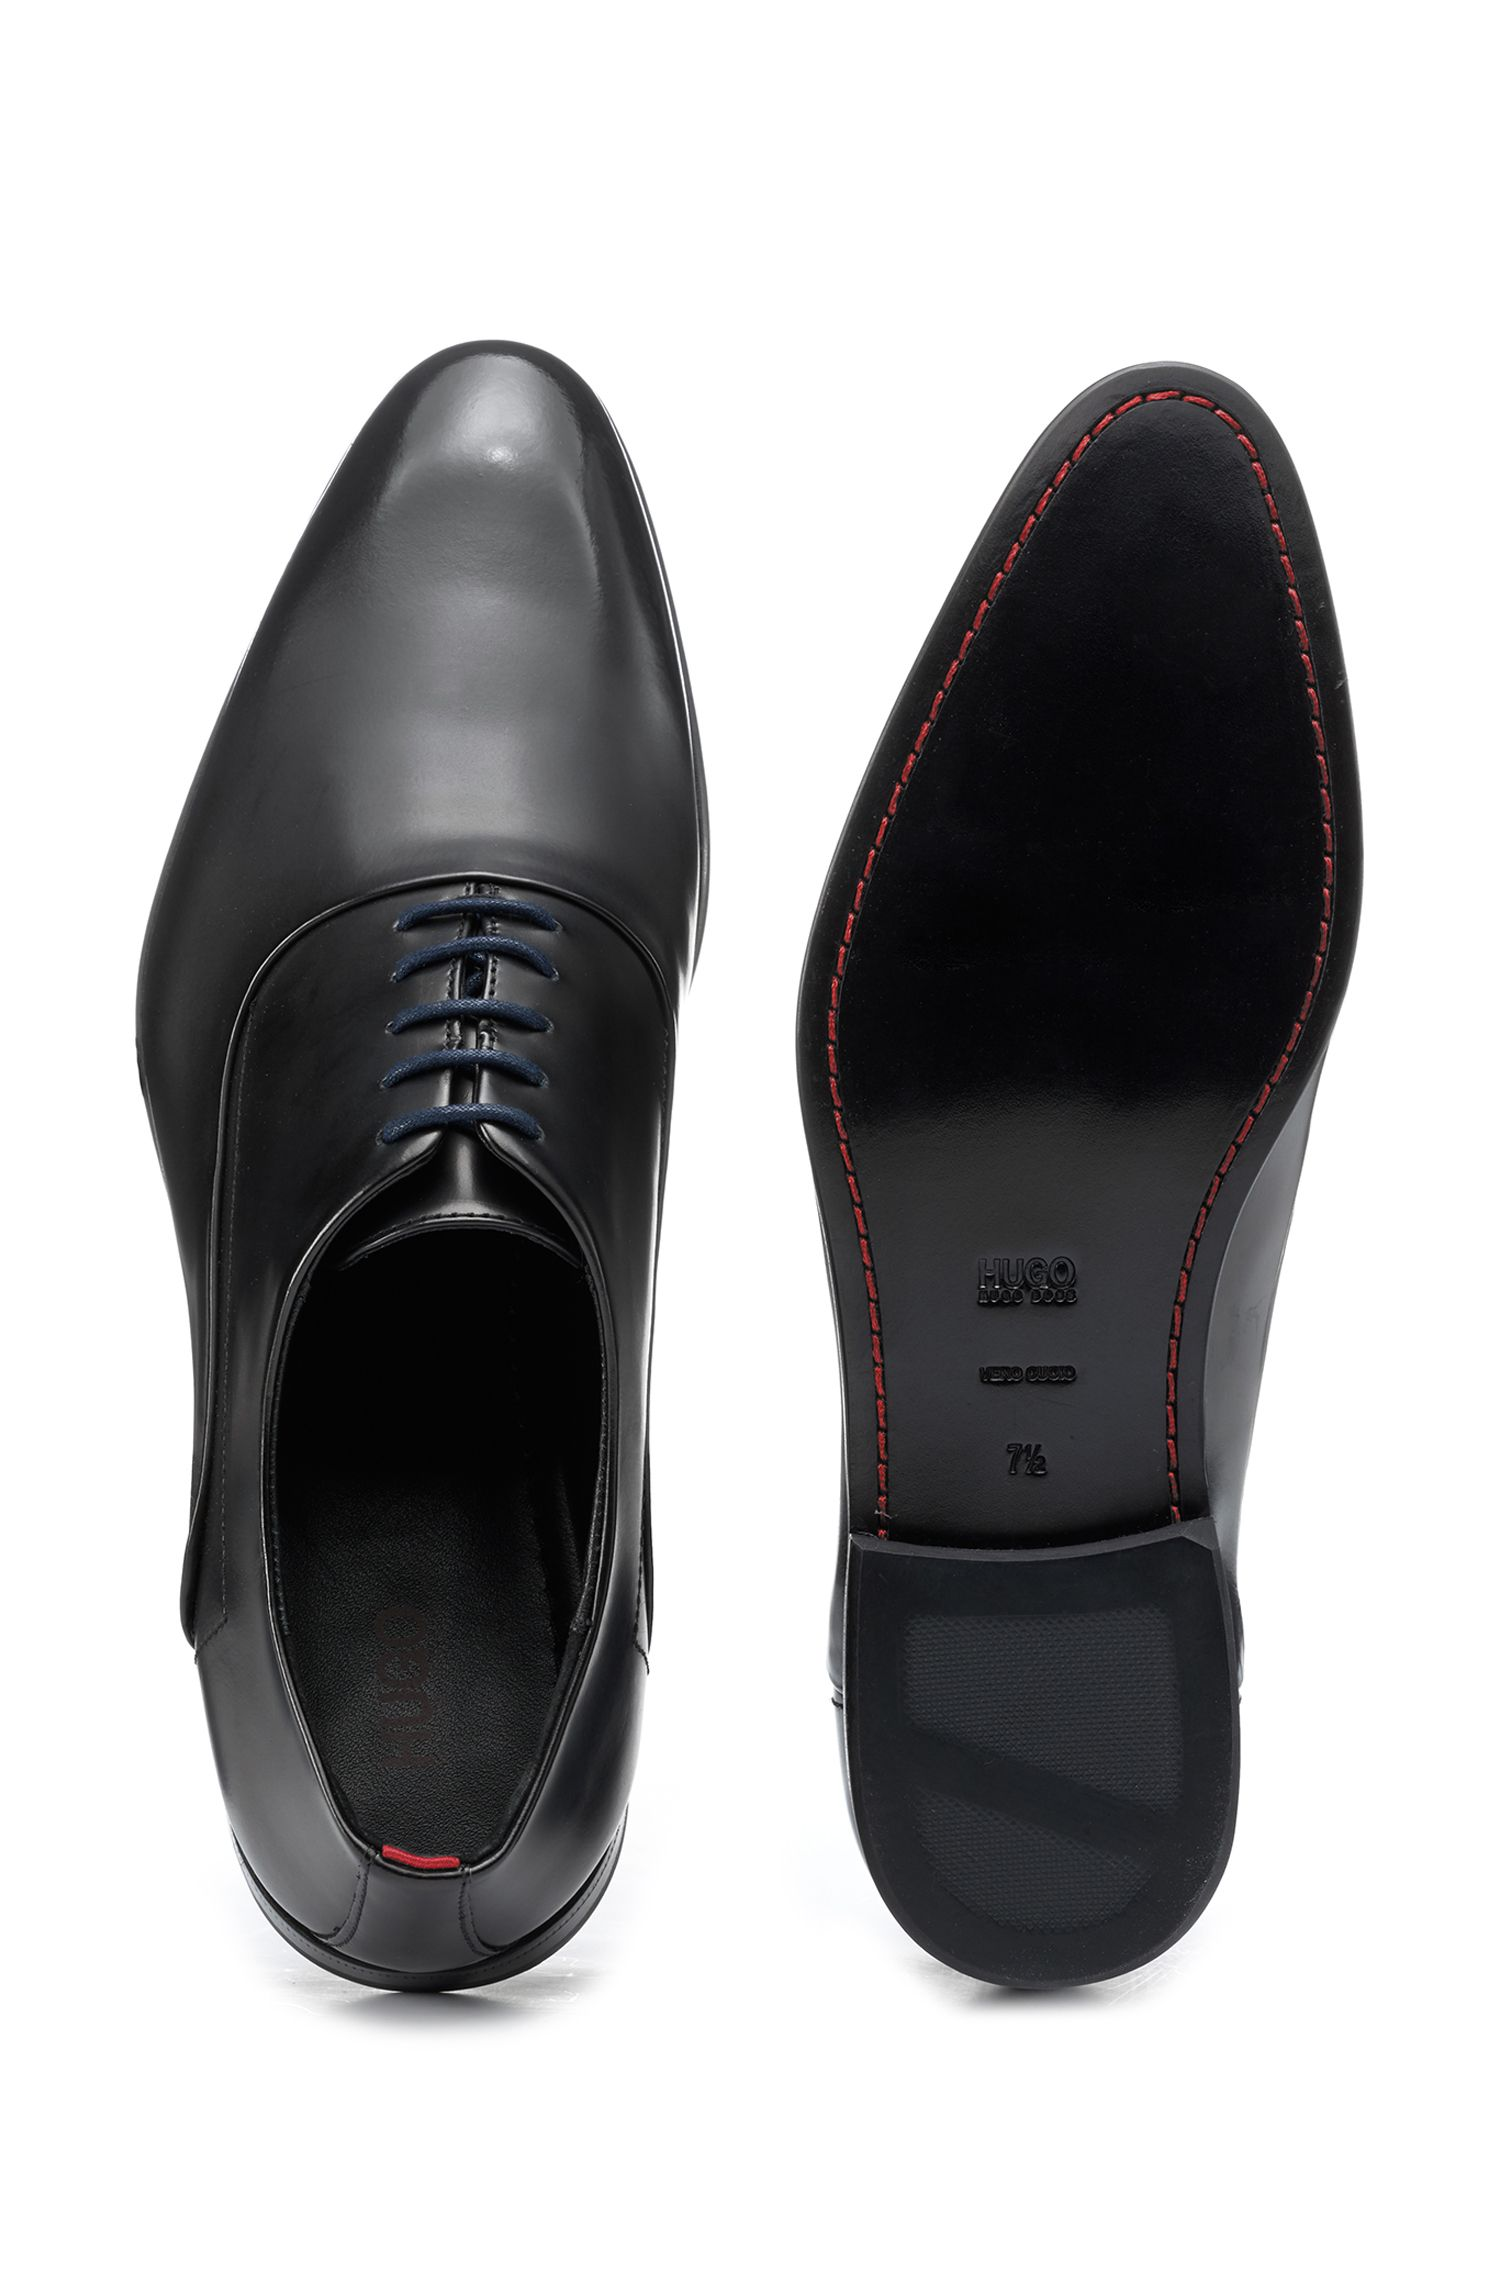 Oxford shoes with brush-off leather uppers